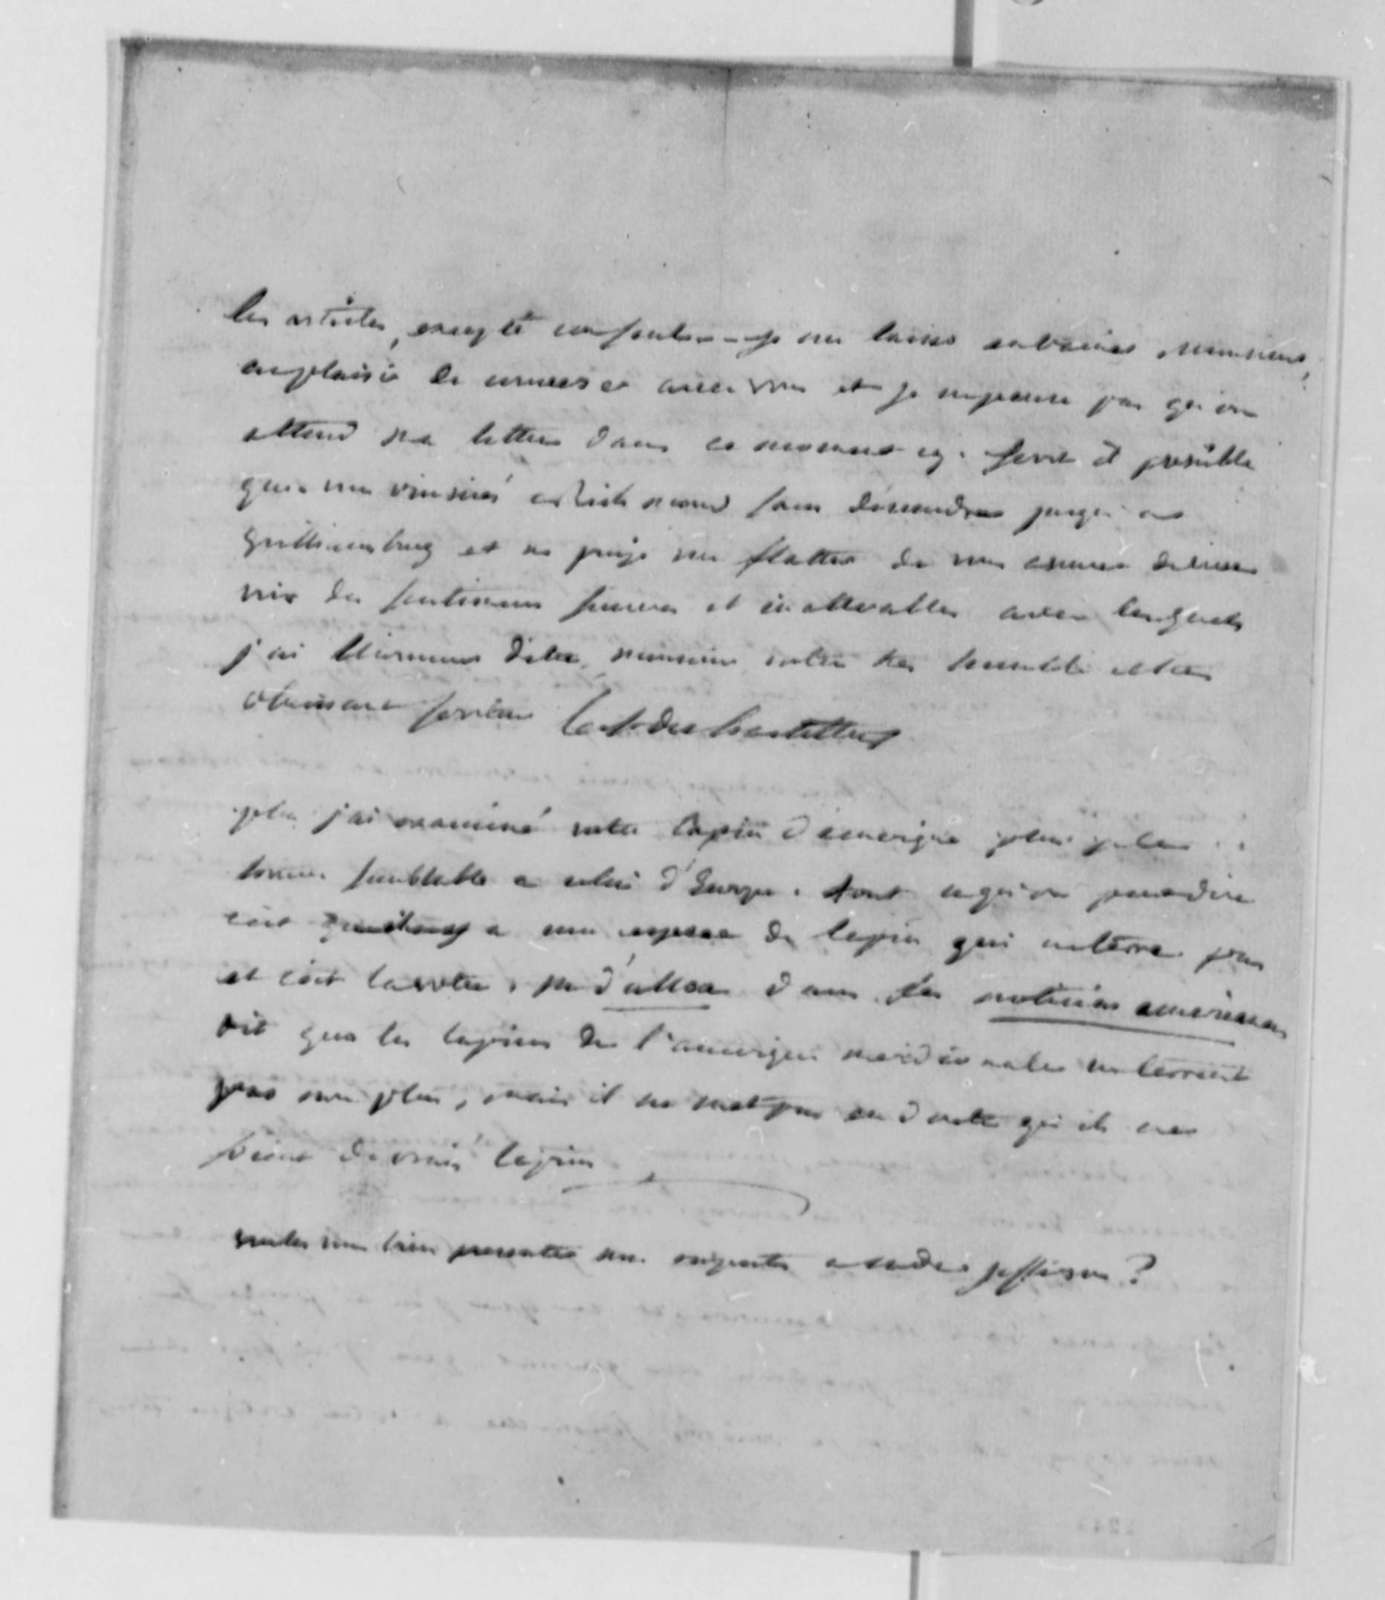 Francois Jean, Chevalier de Chastellux to Thomas Jefferson, June 10, 1782, in French